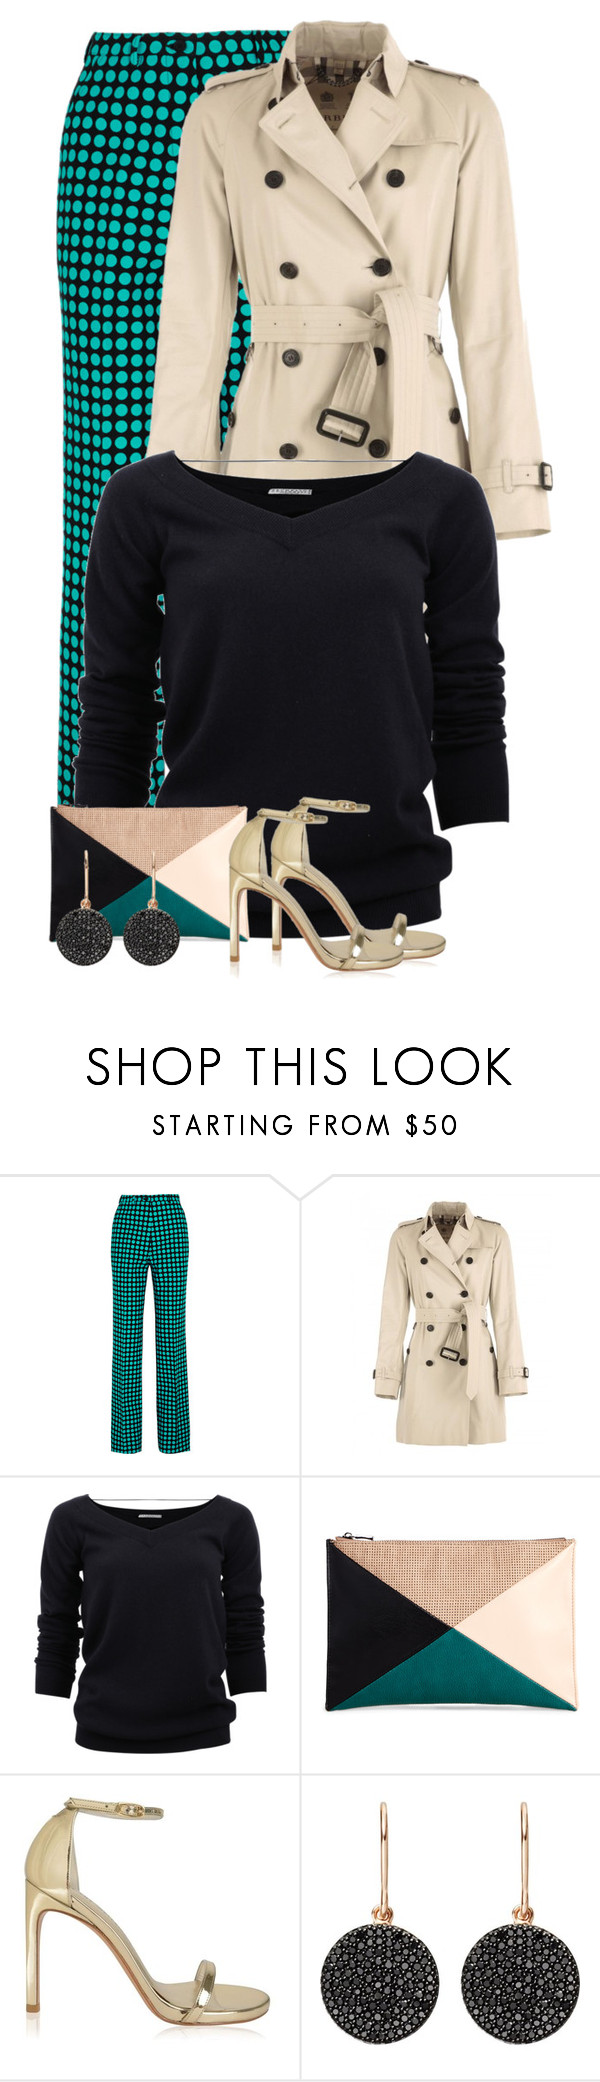 """Polka Dot Pants & Burberry Trench"" by majezy ❤ liked on Polyvore featuring Bottega Veneta, Burberry, Brunello Cucinelli, Sole Society, Stuart Weitzman and Astley Clarke"